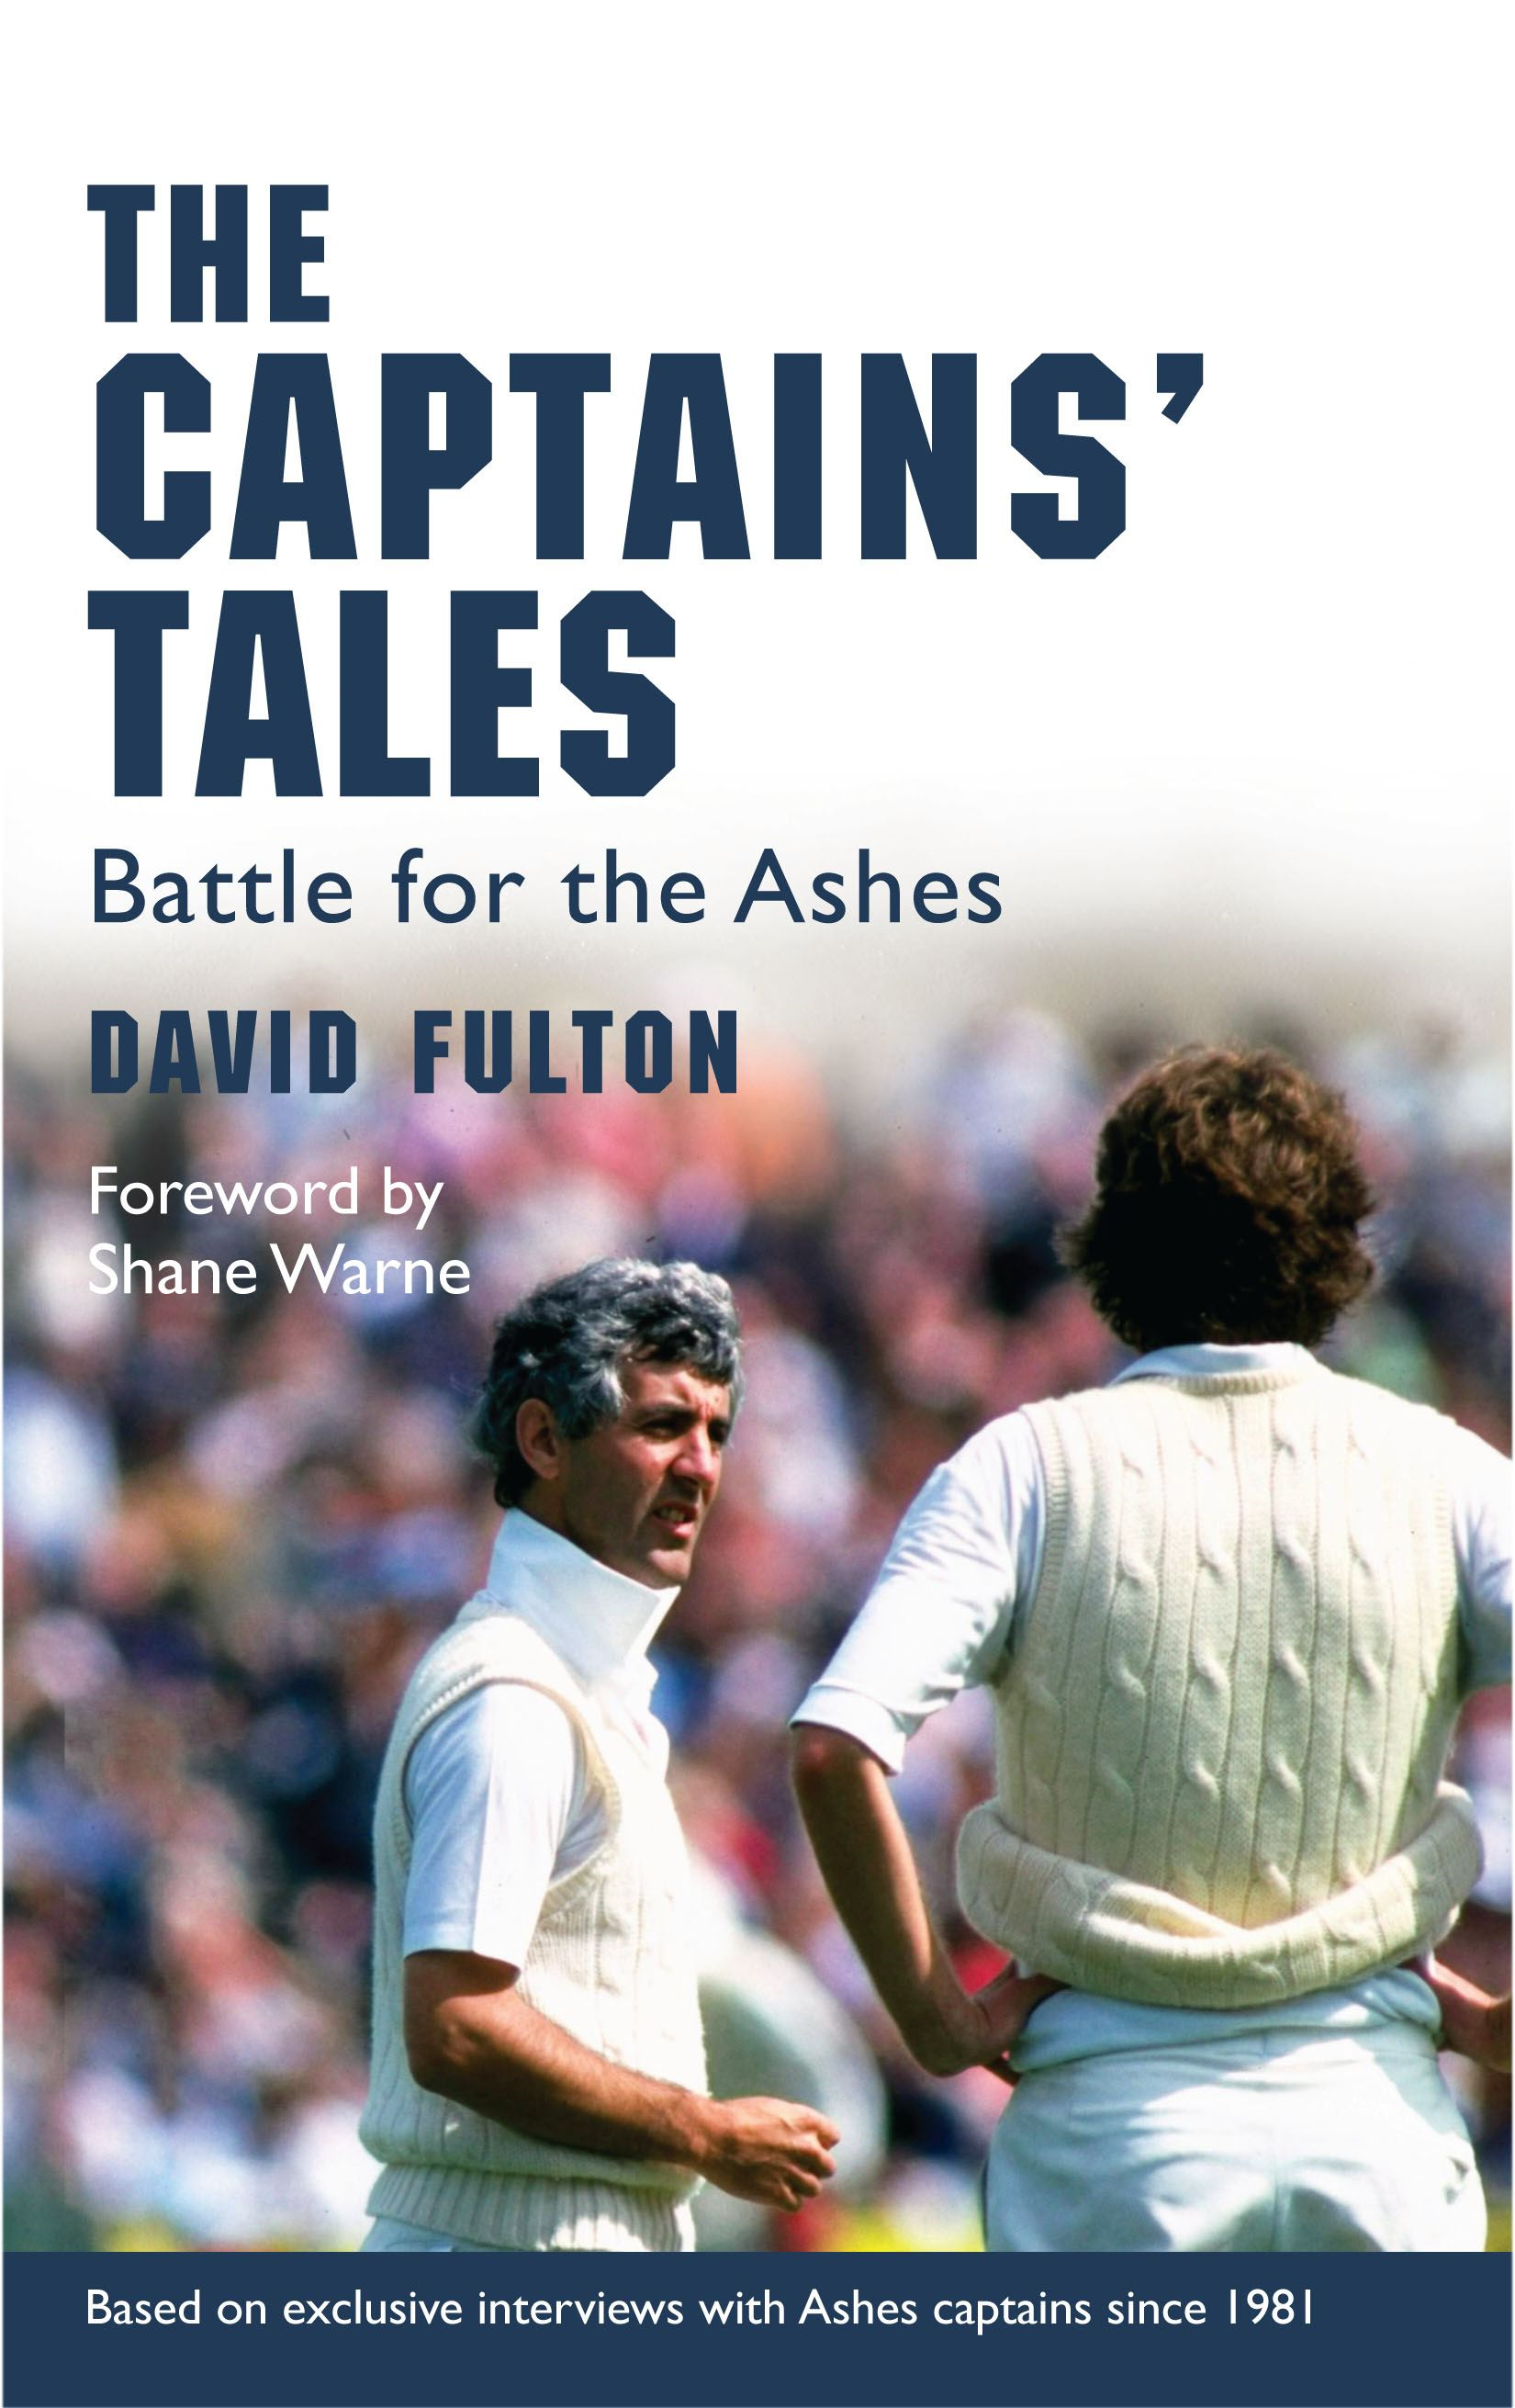 The Captains' Tales Battle for the Ashes